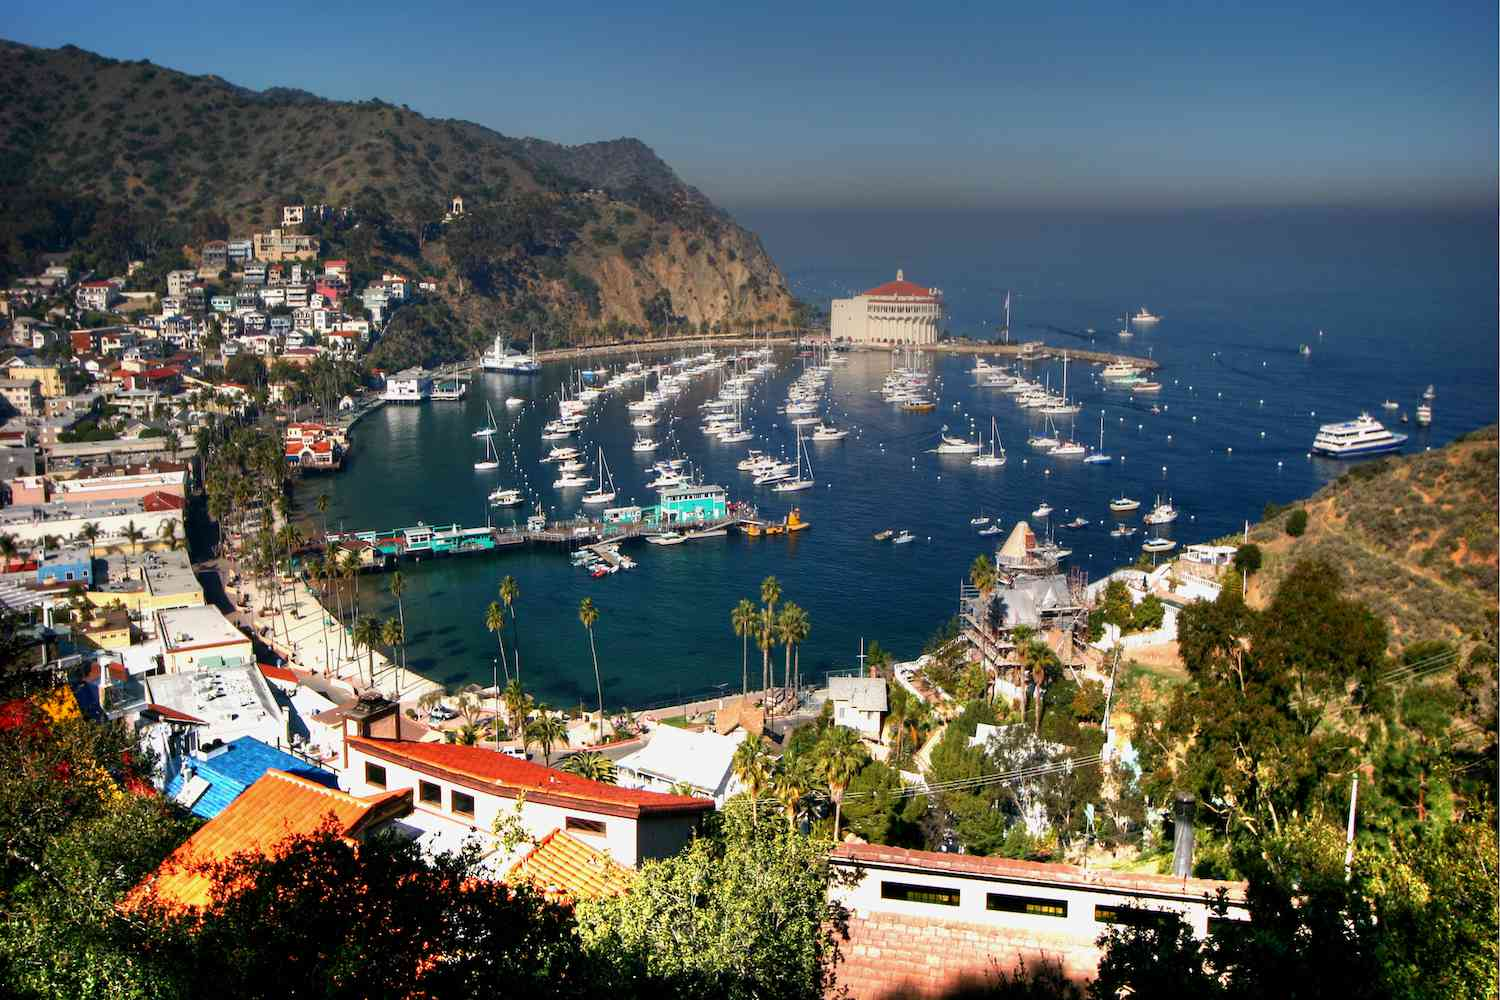 Sailboats sit in the harbor of Catalina Island